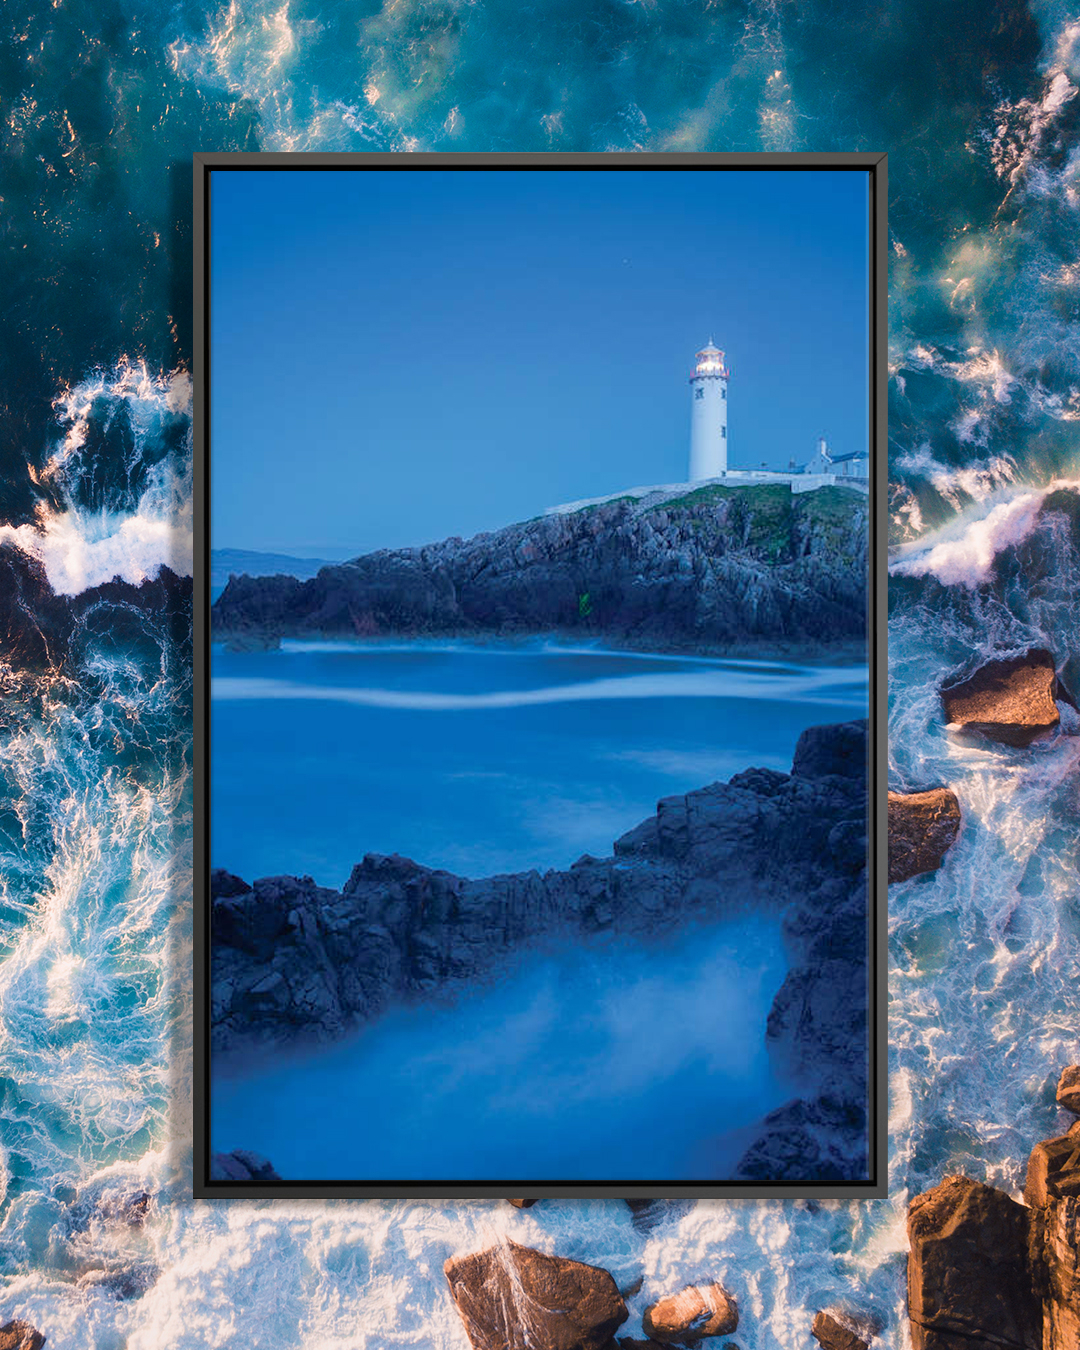 """Dusk I, Fanad Head Lighthouse, County Donegal, Ulster Province, Republic Of Ireland"" by Gareth McCormack shows a blue sea surrounded by bank rocks under a blue sky with a lighthouse in the distance."